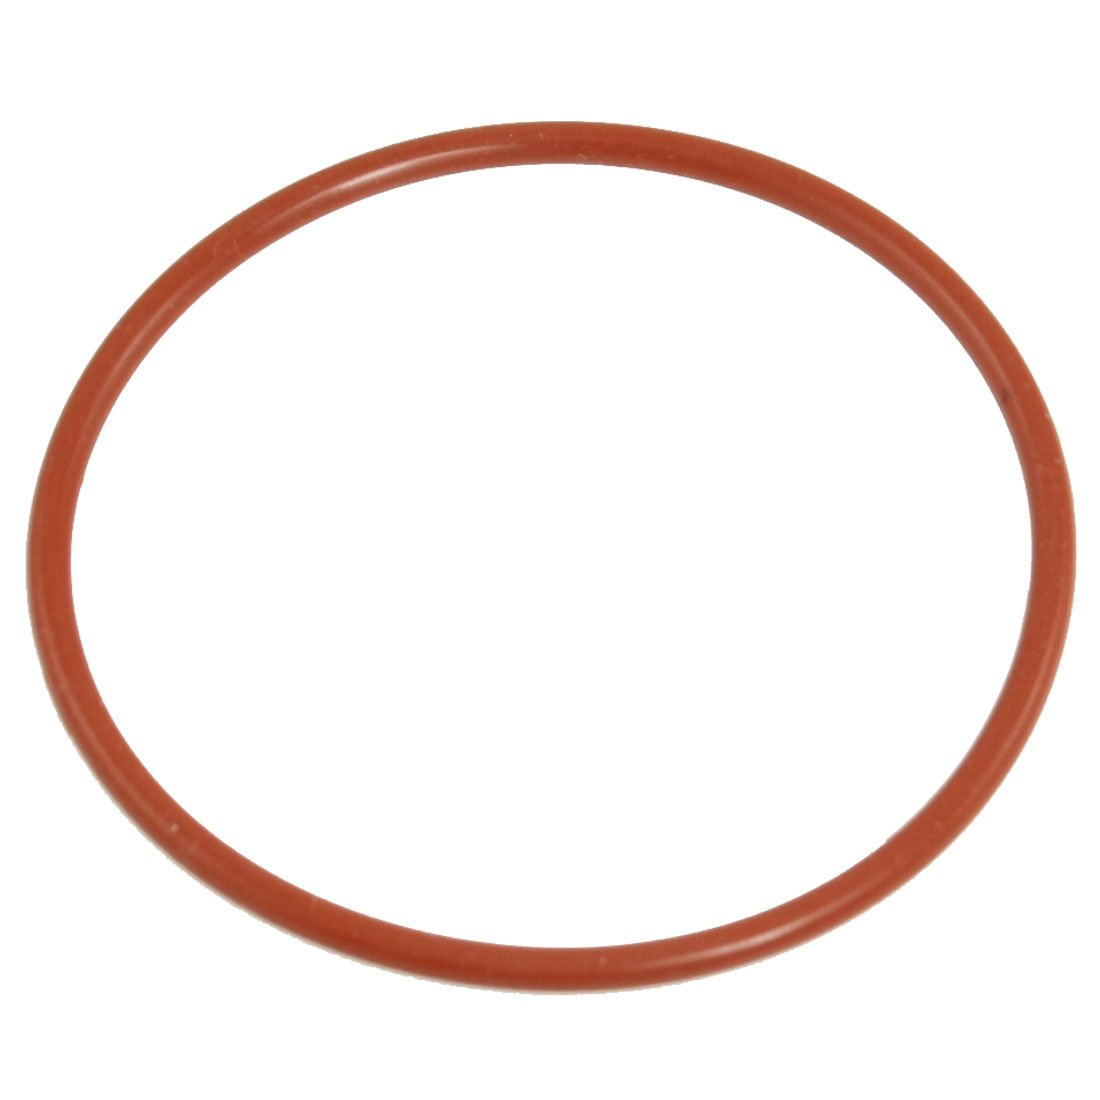 uxcell 70mm Outside Dia 3mm Thick Flexible Silicone O Ring Seal Brick Red